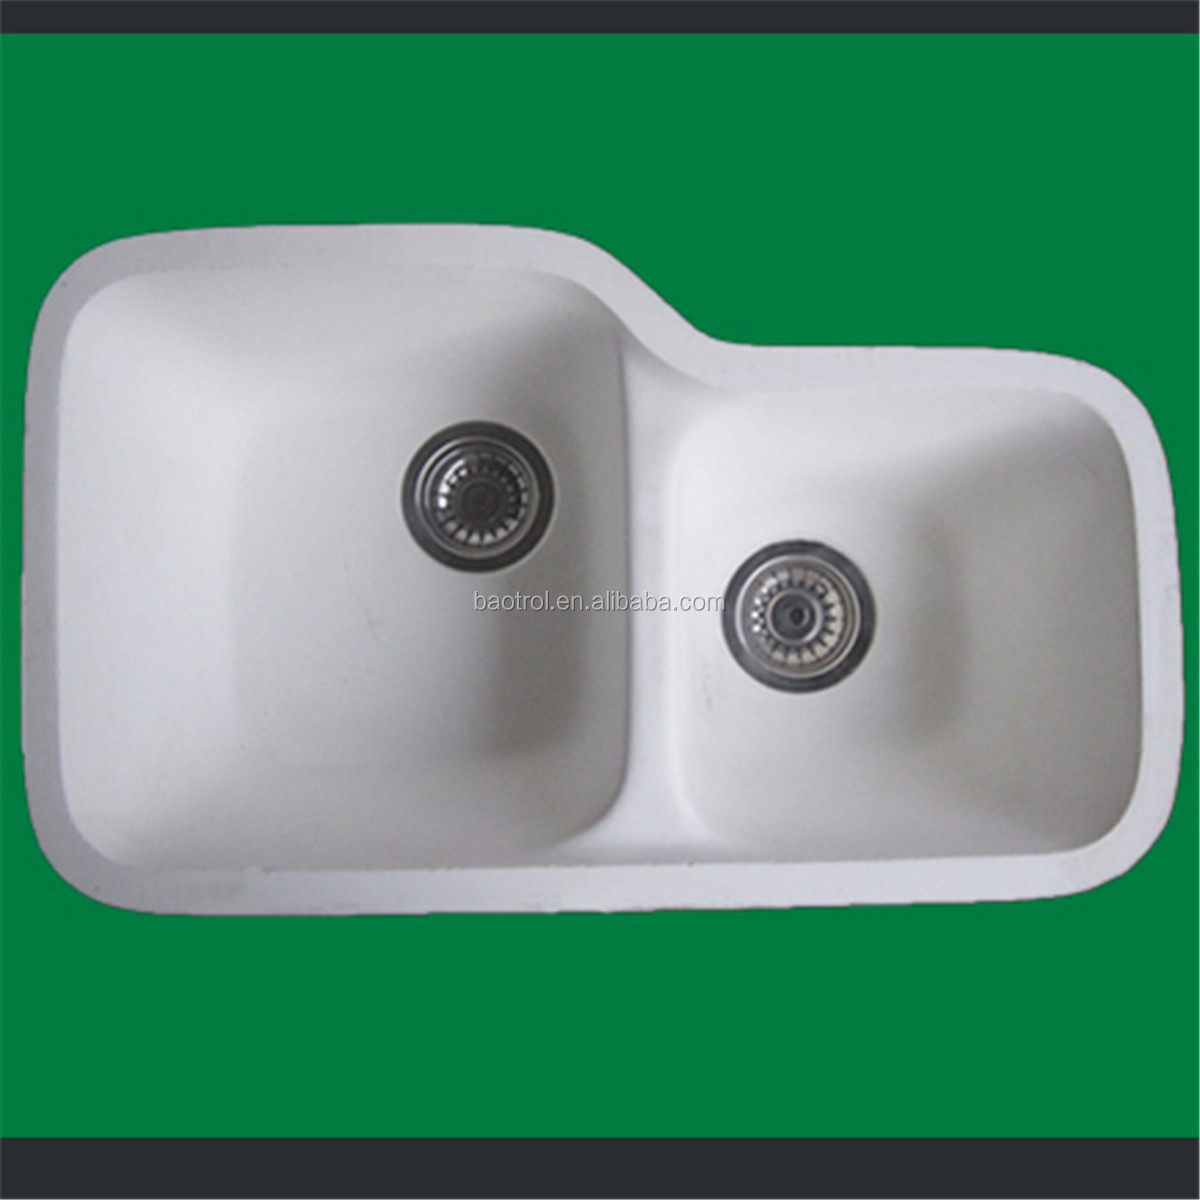 corian sink price corian sink price suppliers and manufacturers at alibabacom. Interior Design Ideas. Home Design Ideas